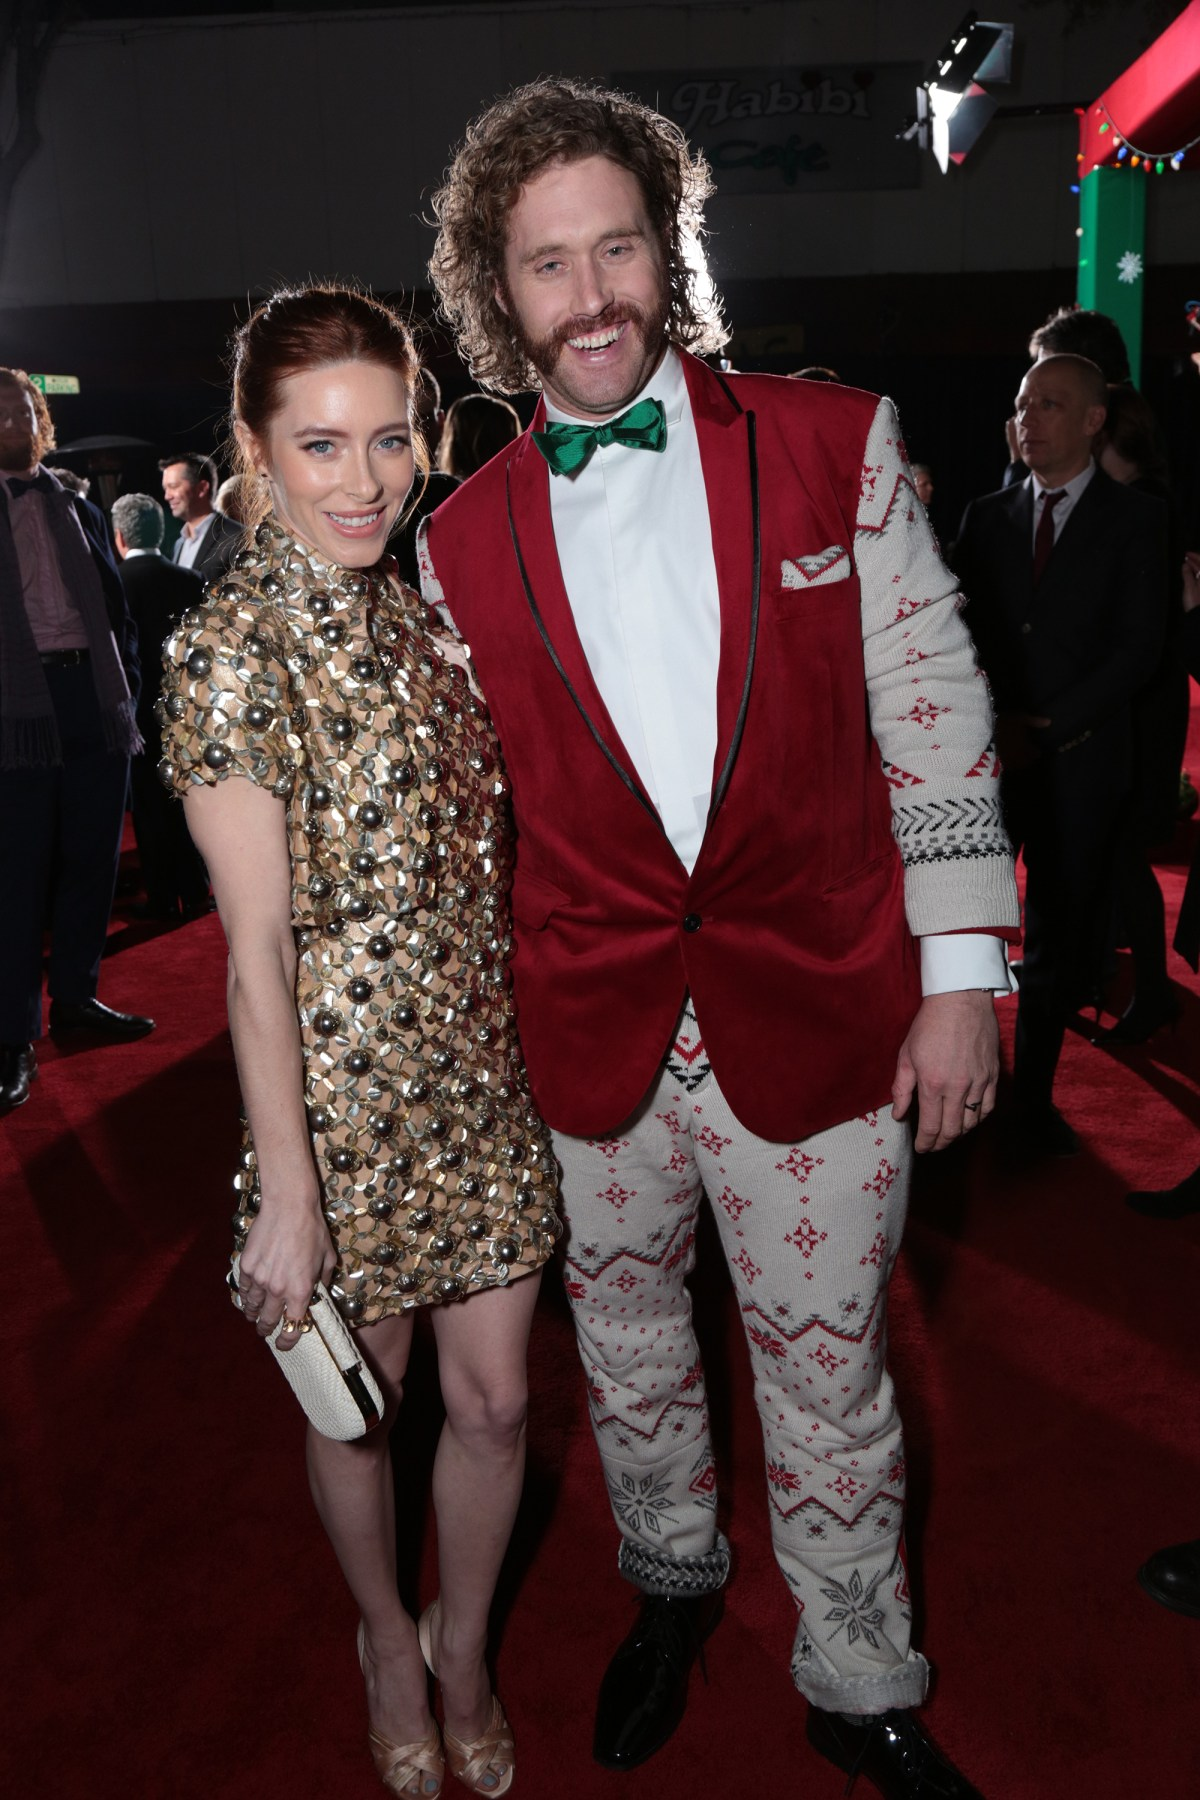 """Kate Miller and T.J. Miller pose as Paramount Pictures presents the Los Angeles premiere of """"Office Christmas Party"""" at the Regency Village Theater in Los Angeles, CA on Wednesday, December 7, 2016  (Photo: Alex J. Berliner / ABImages)"""